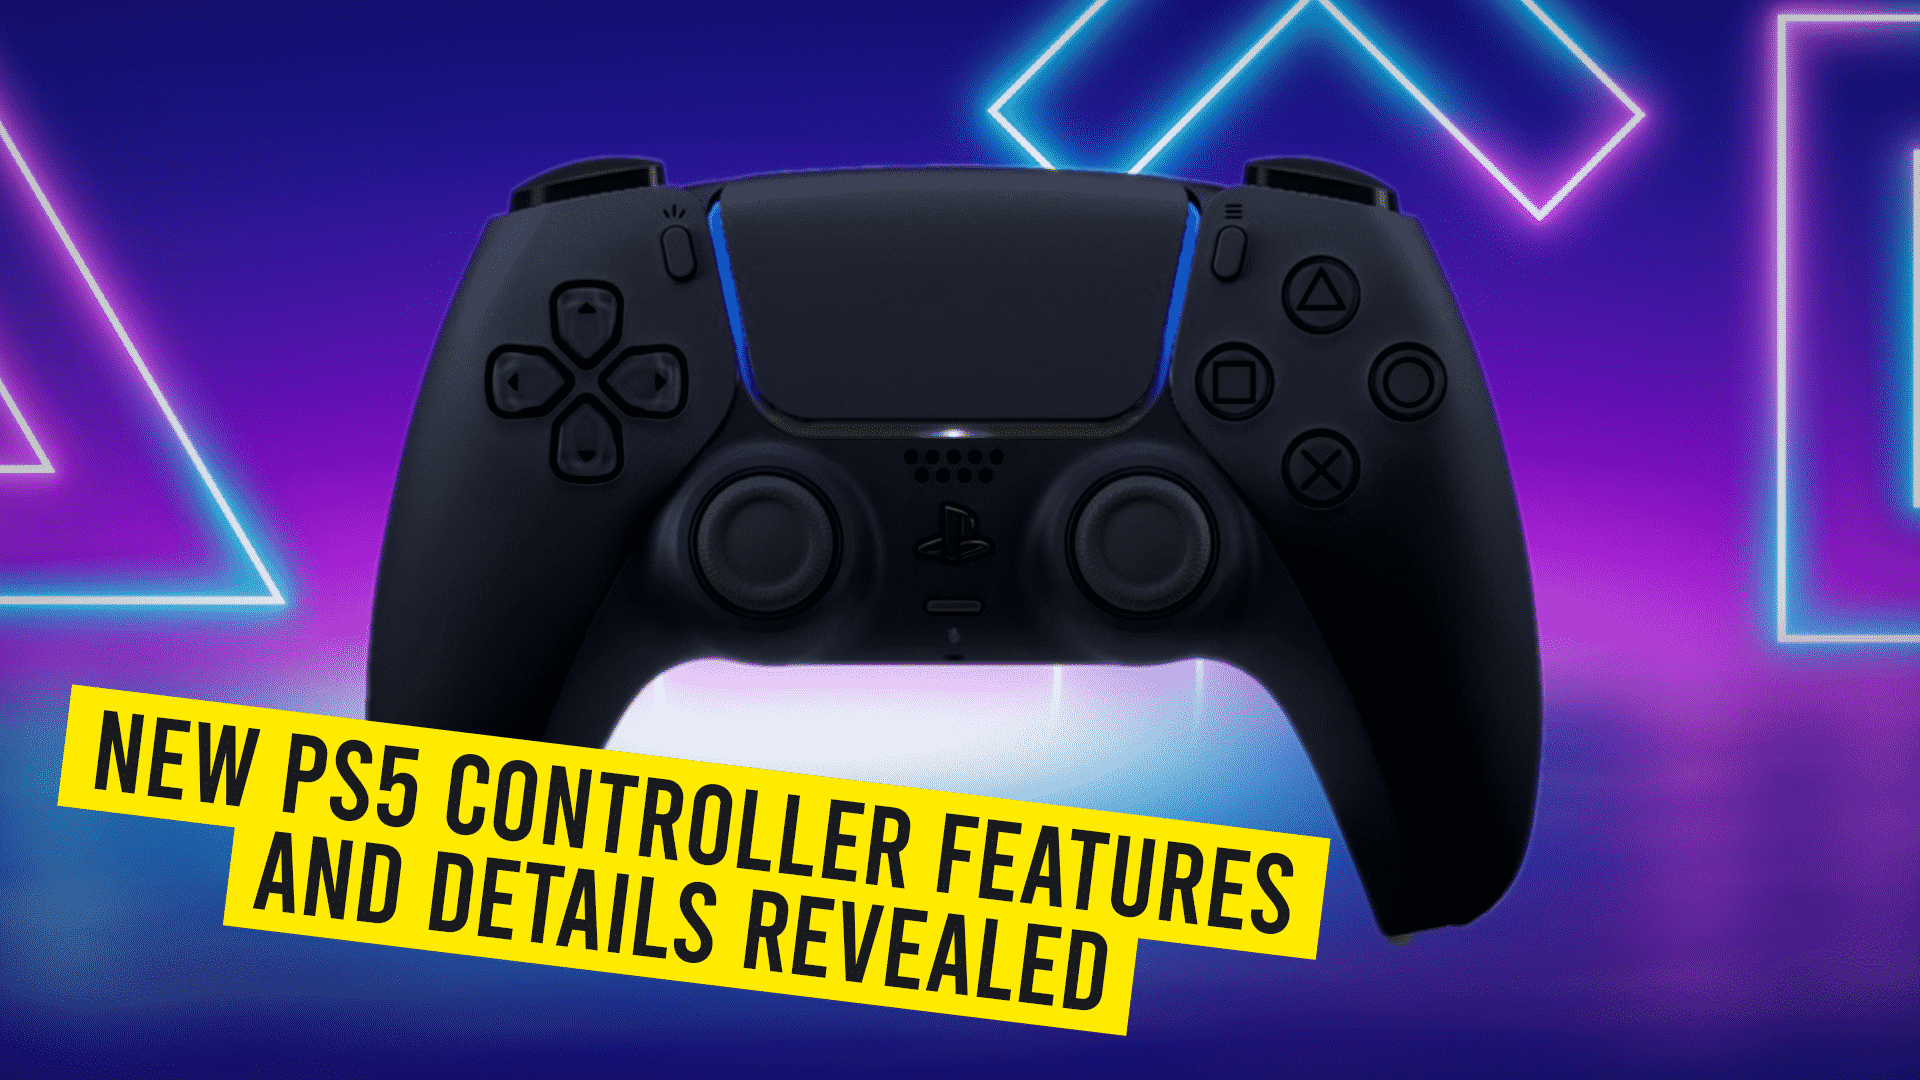 New PS5 Controller Revealed